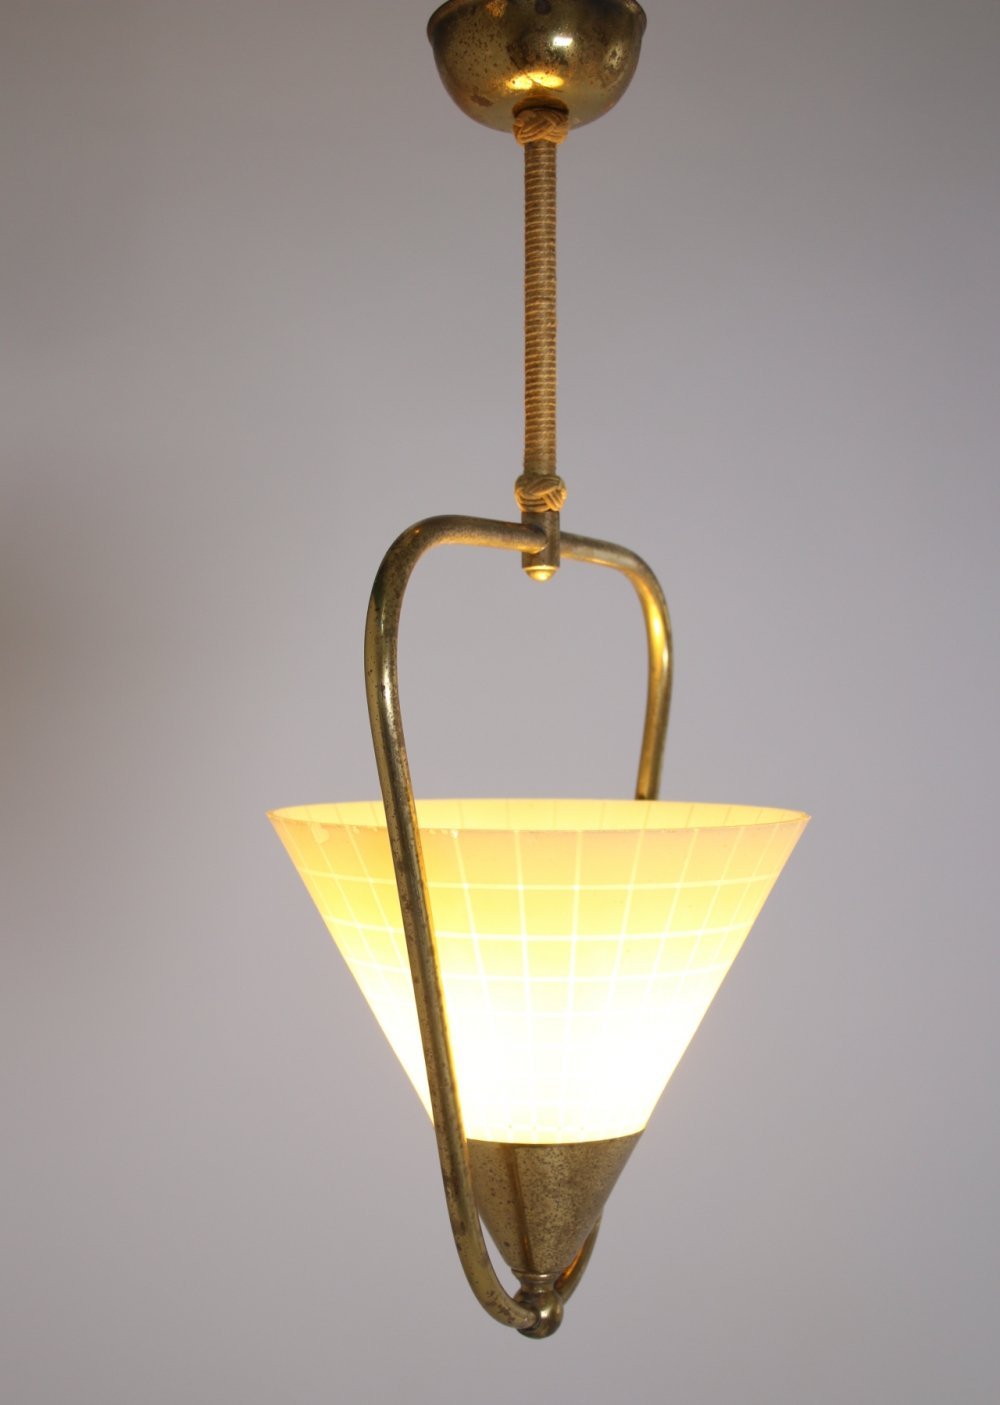 Hanging lamp with glass shade, 1960s